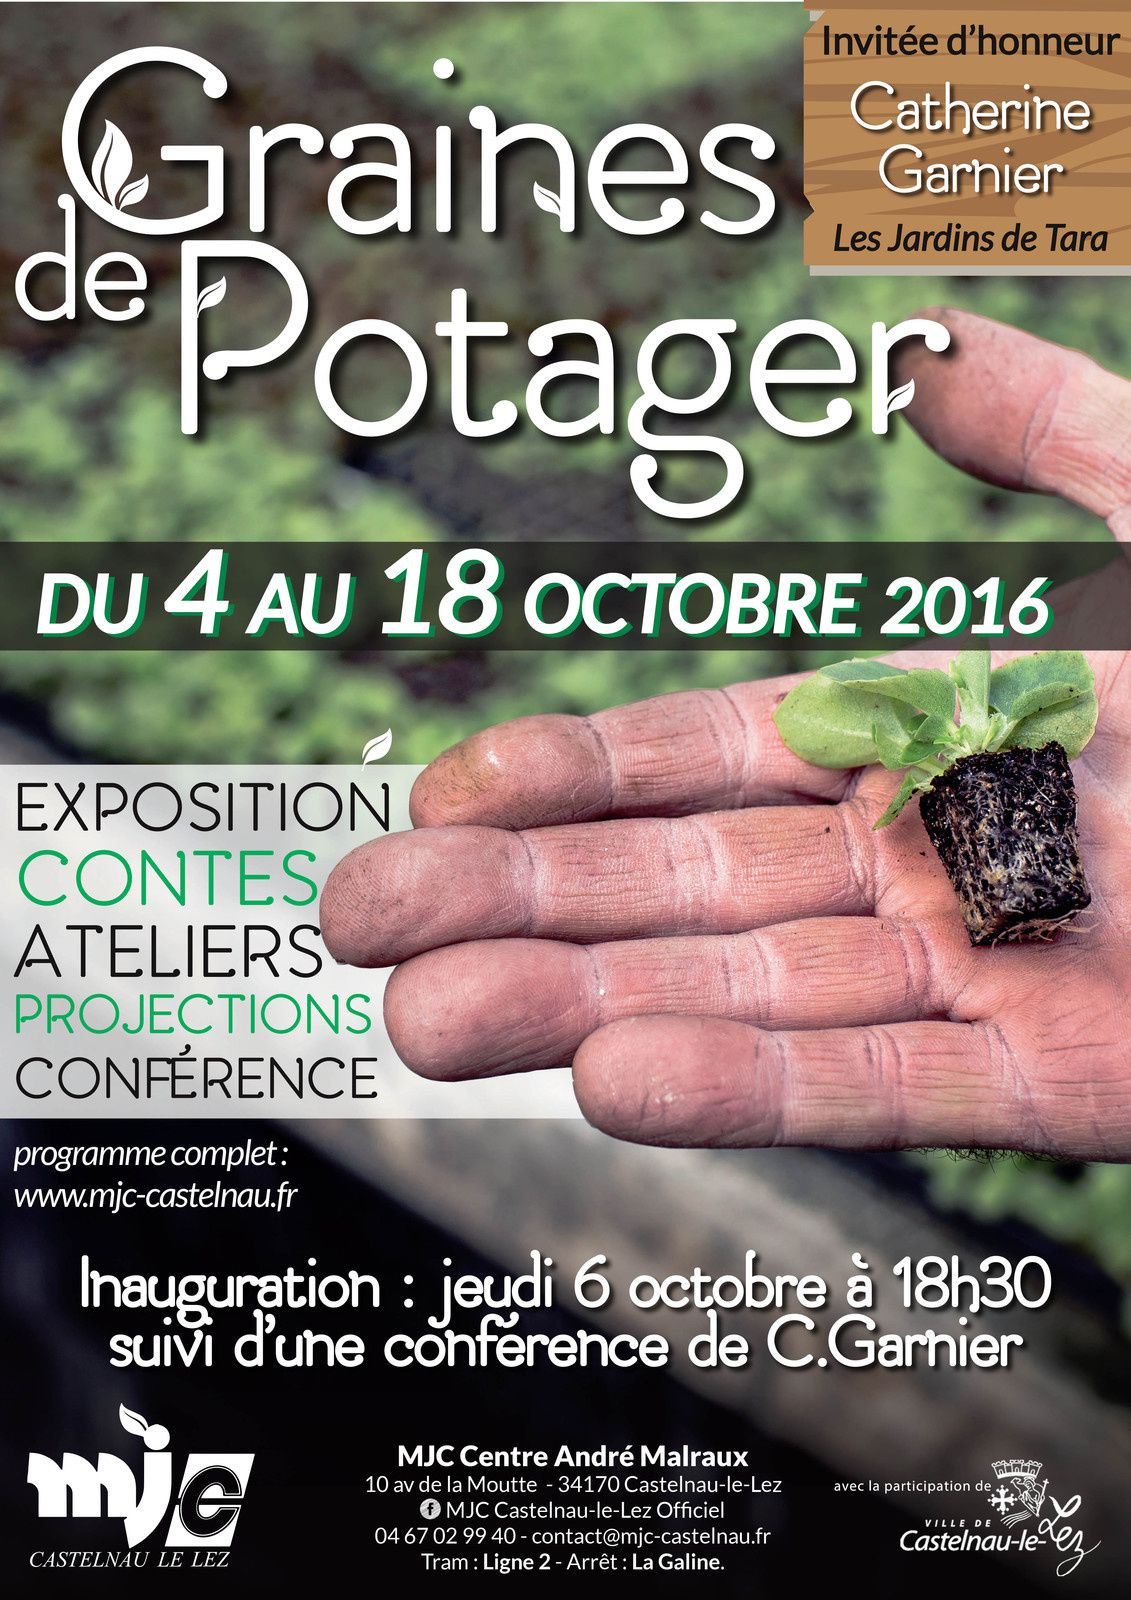 Graines de Potagers